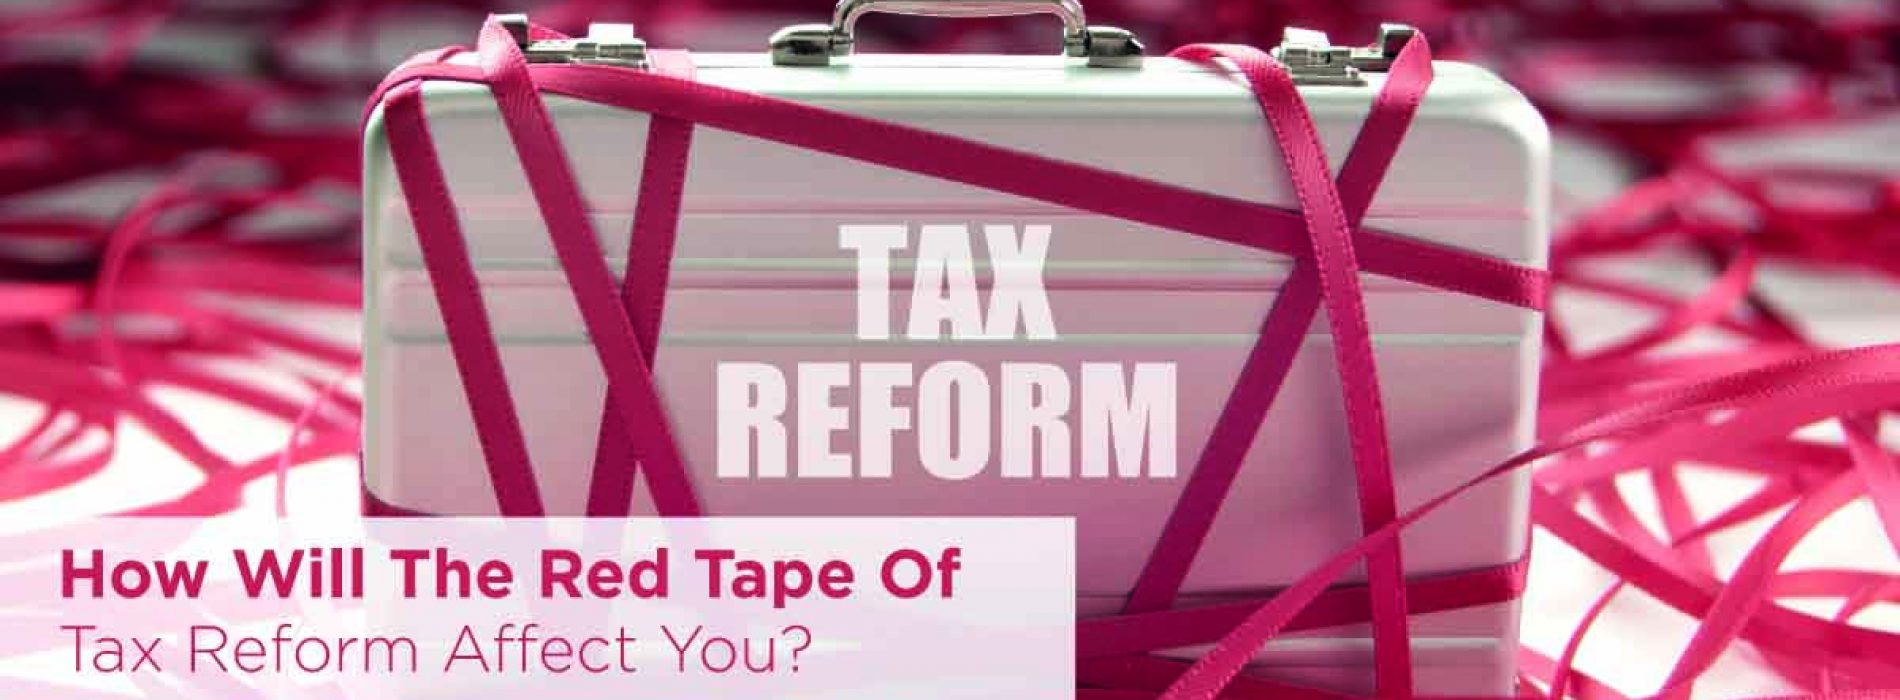 Red tape trips tax reforms